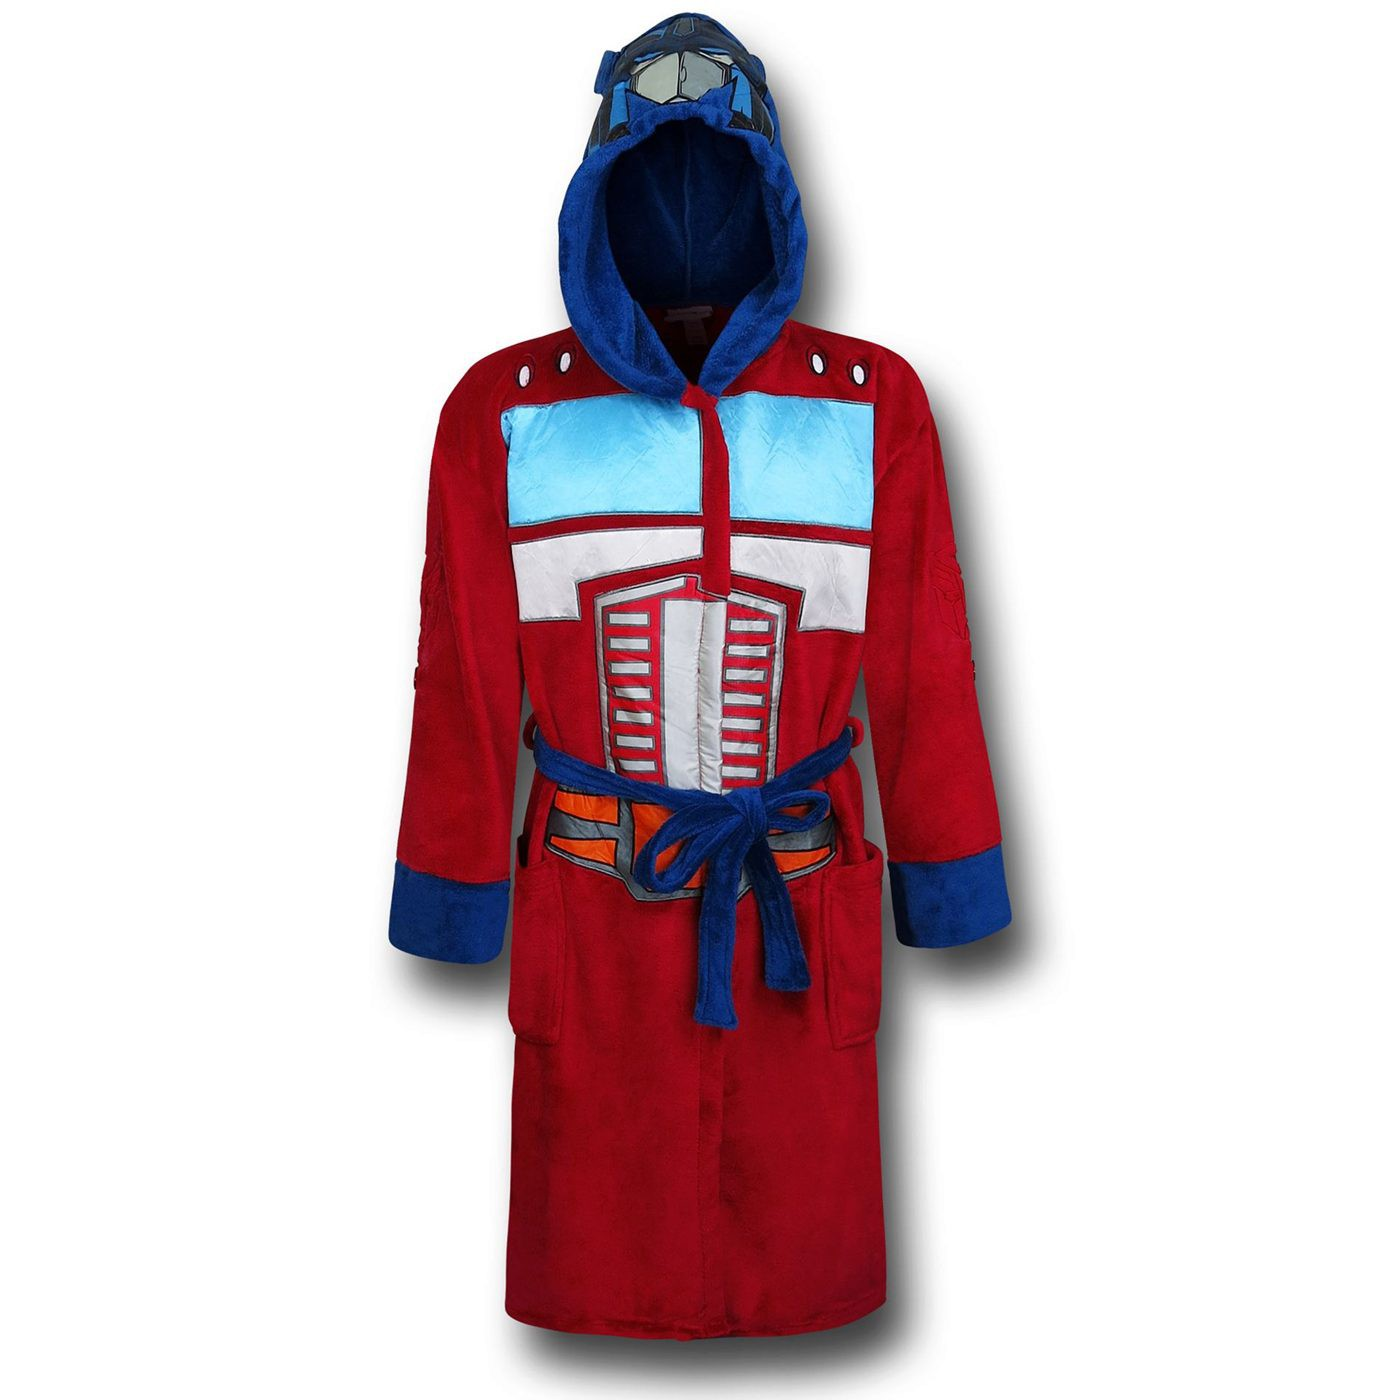 Transformers Optimus Prime Robe